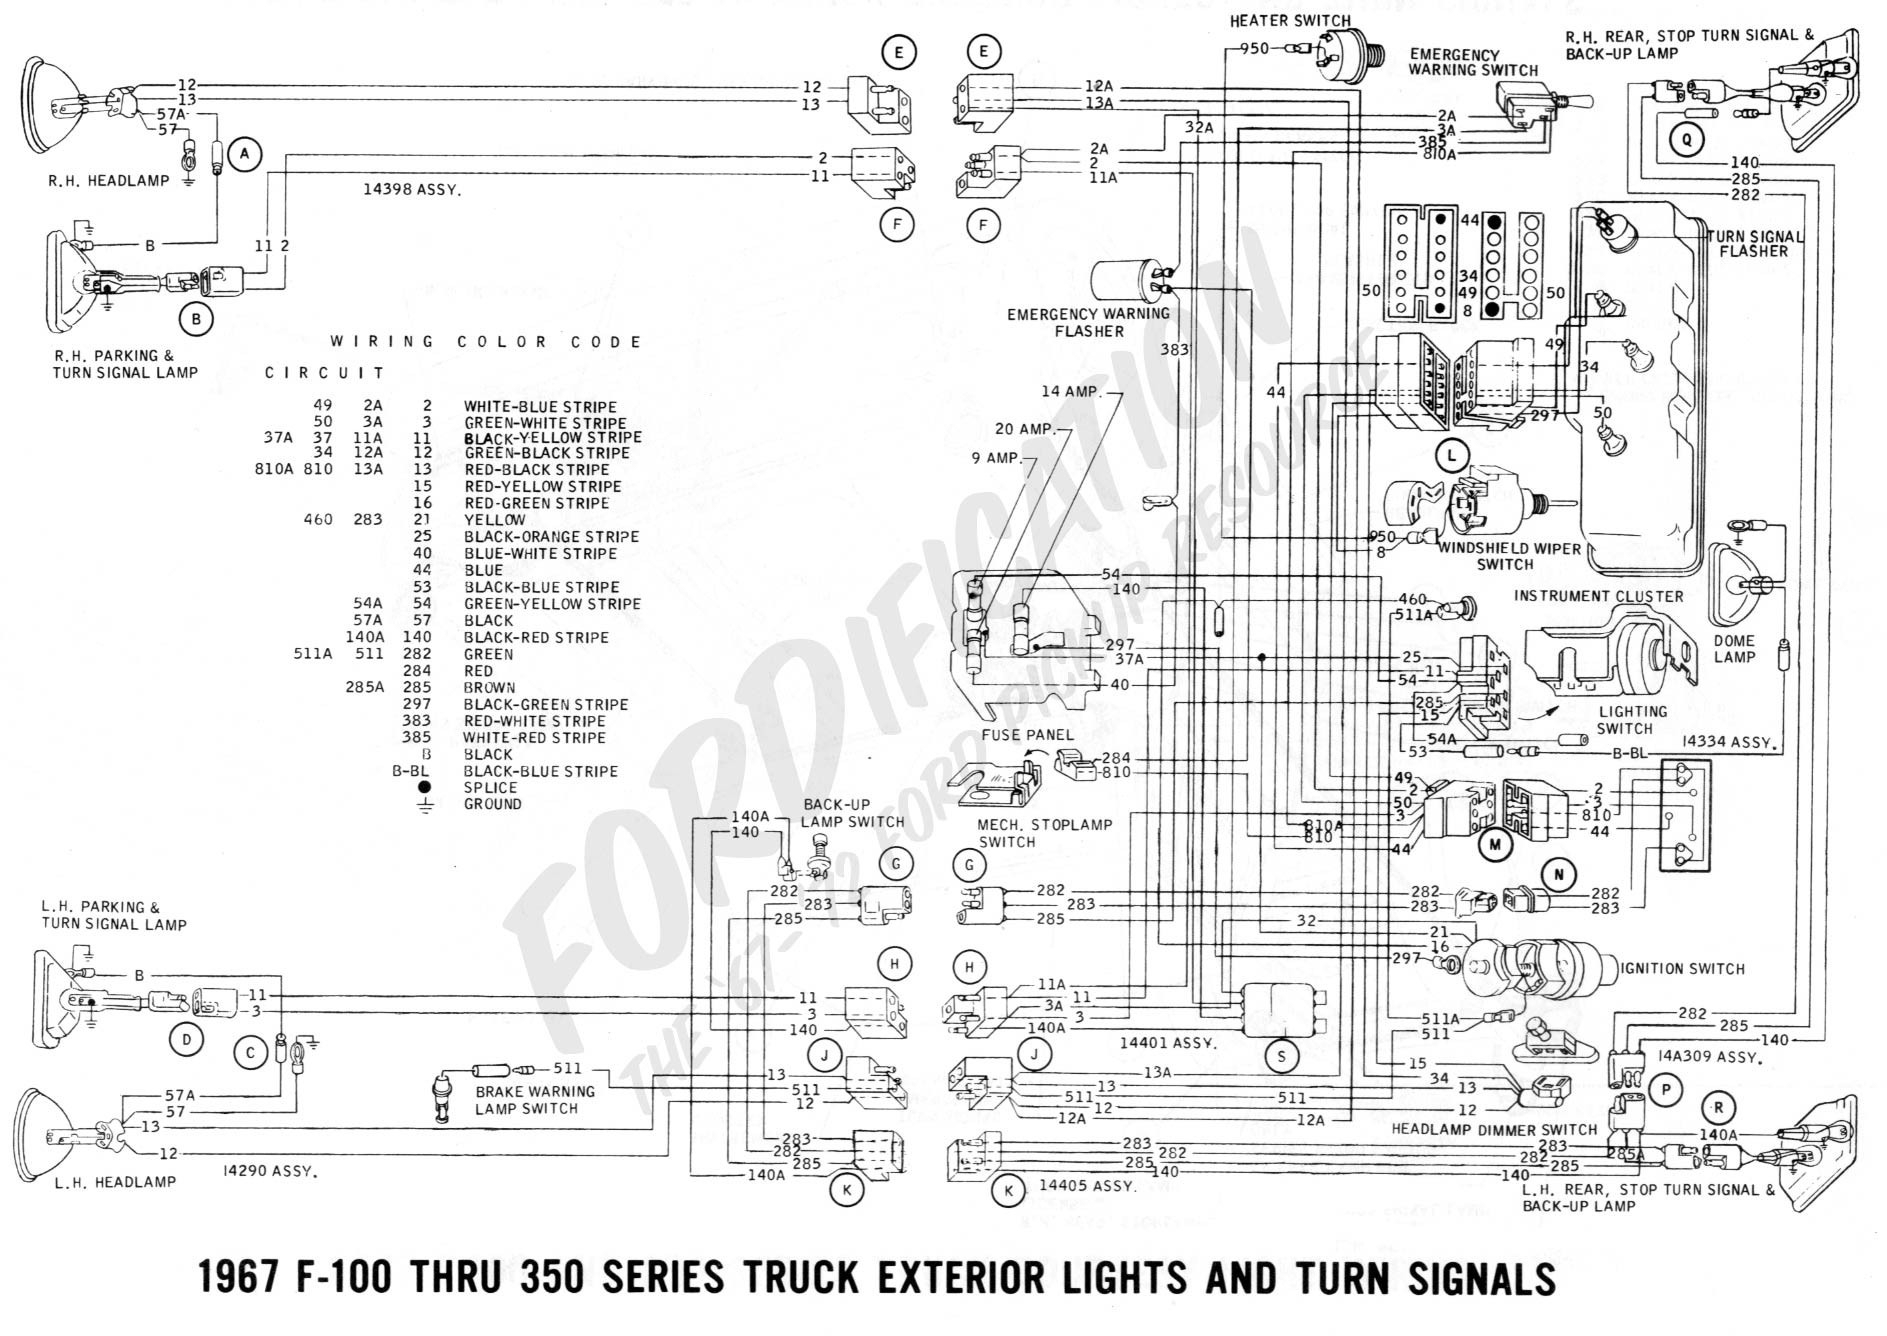 Turn Signal Wiring Diagram Chevy Truck